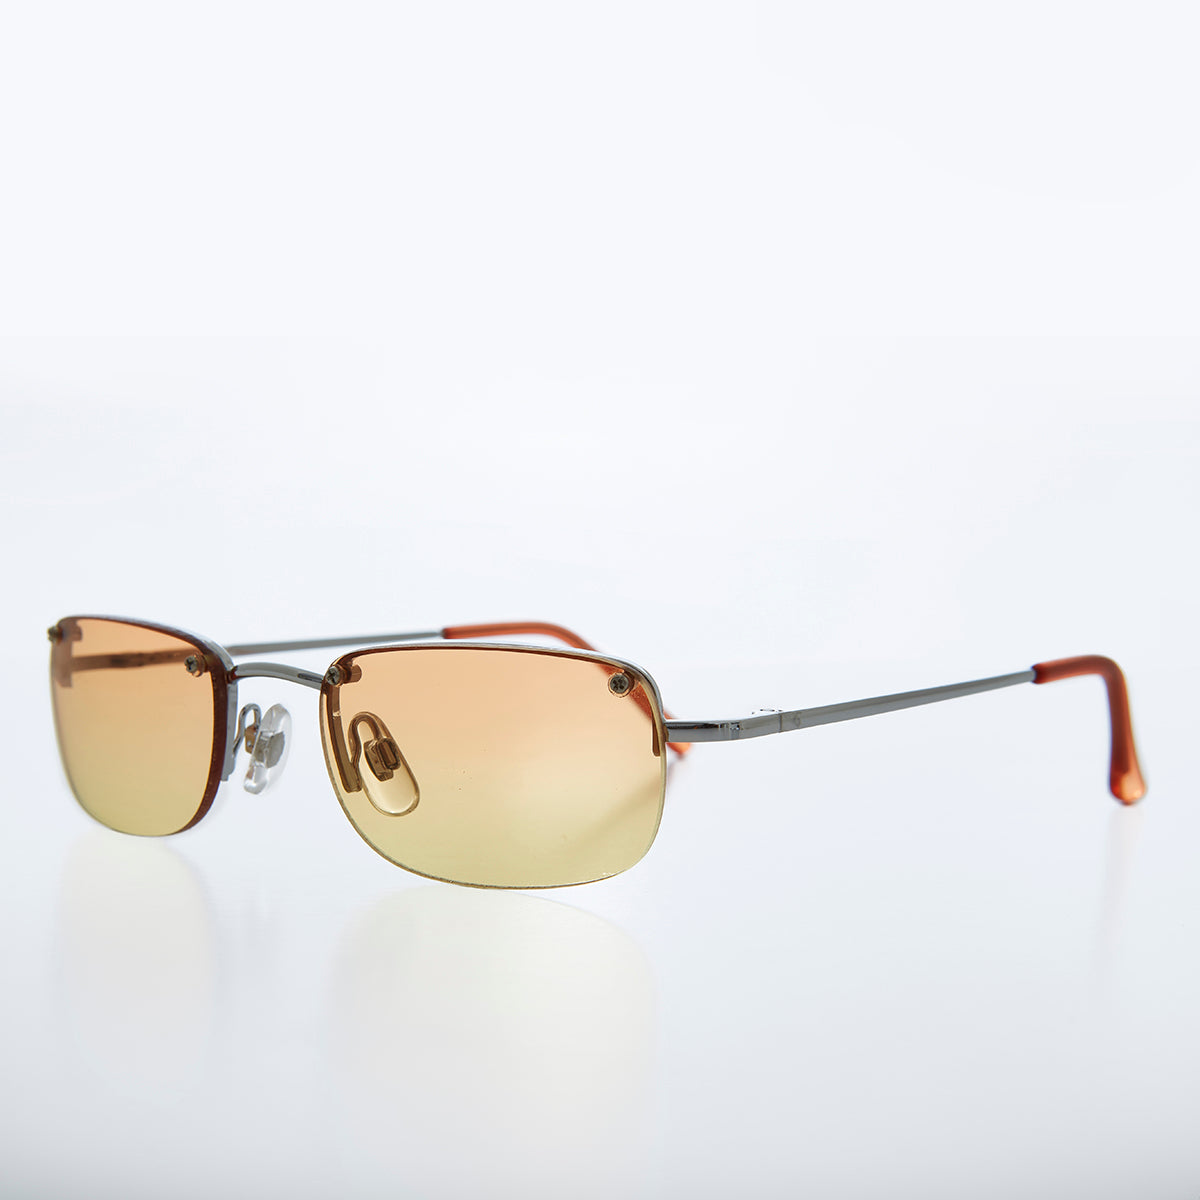 Rimless 90s Rectangle Sunglass with Two Color Lens